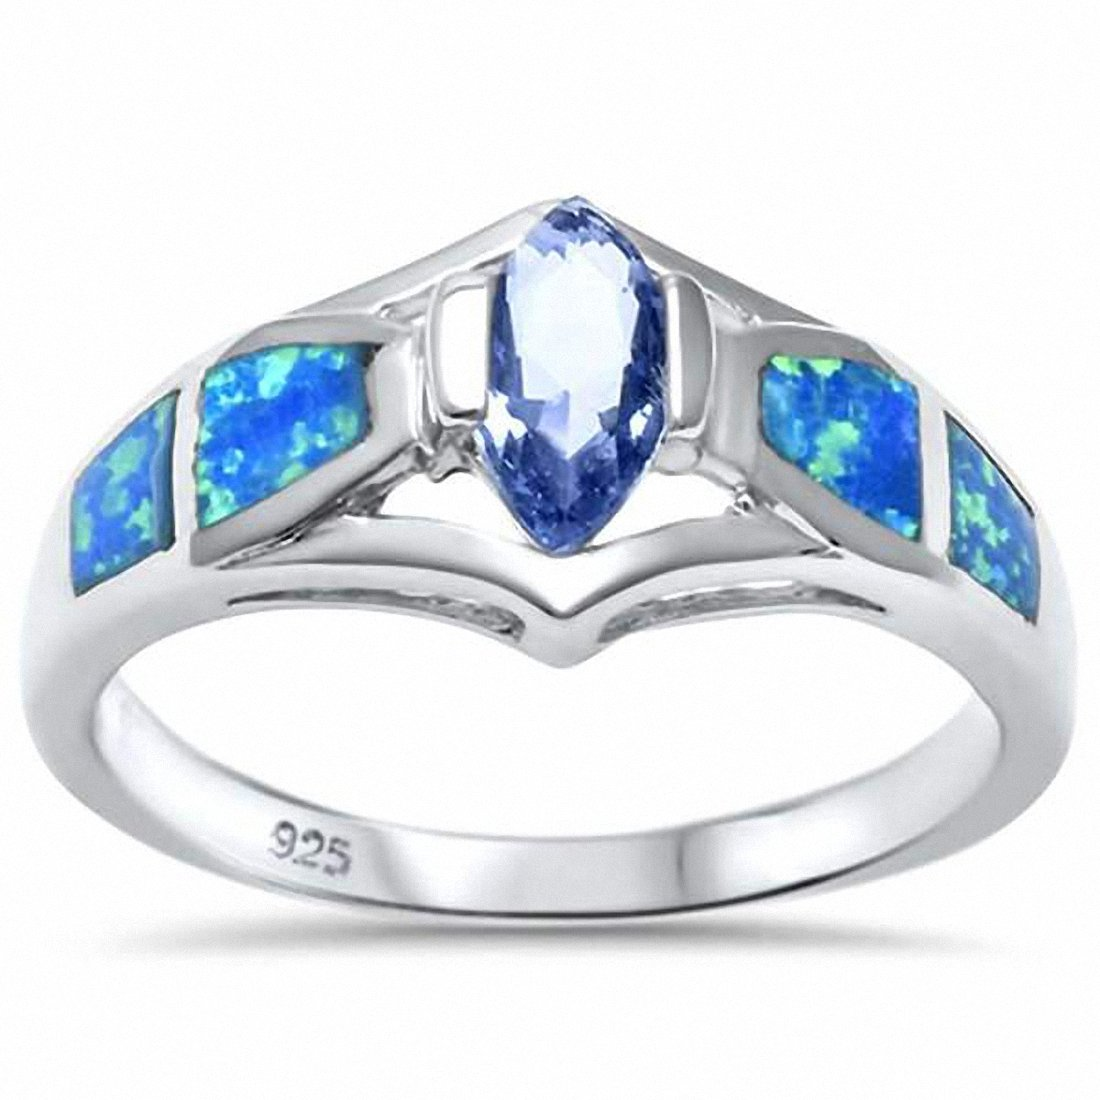 Marquise Simulated Tanzanite Created Opal 925 Sterling Silver Choose Color